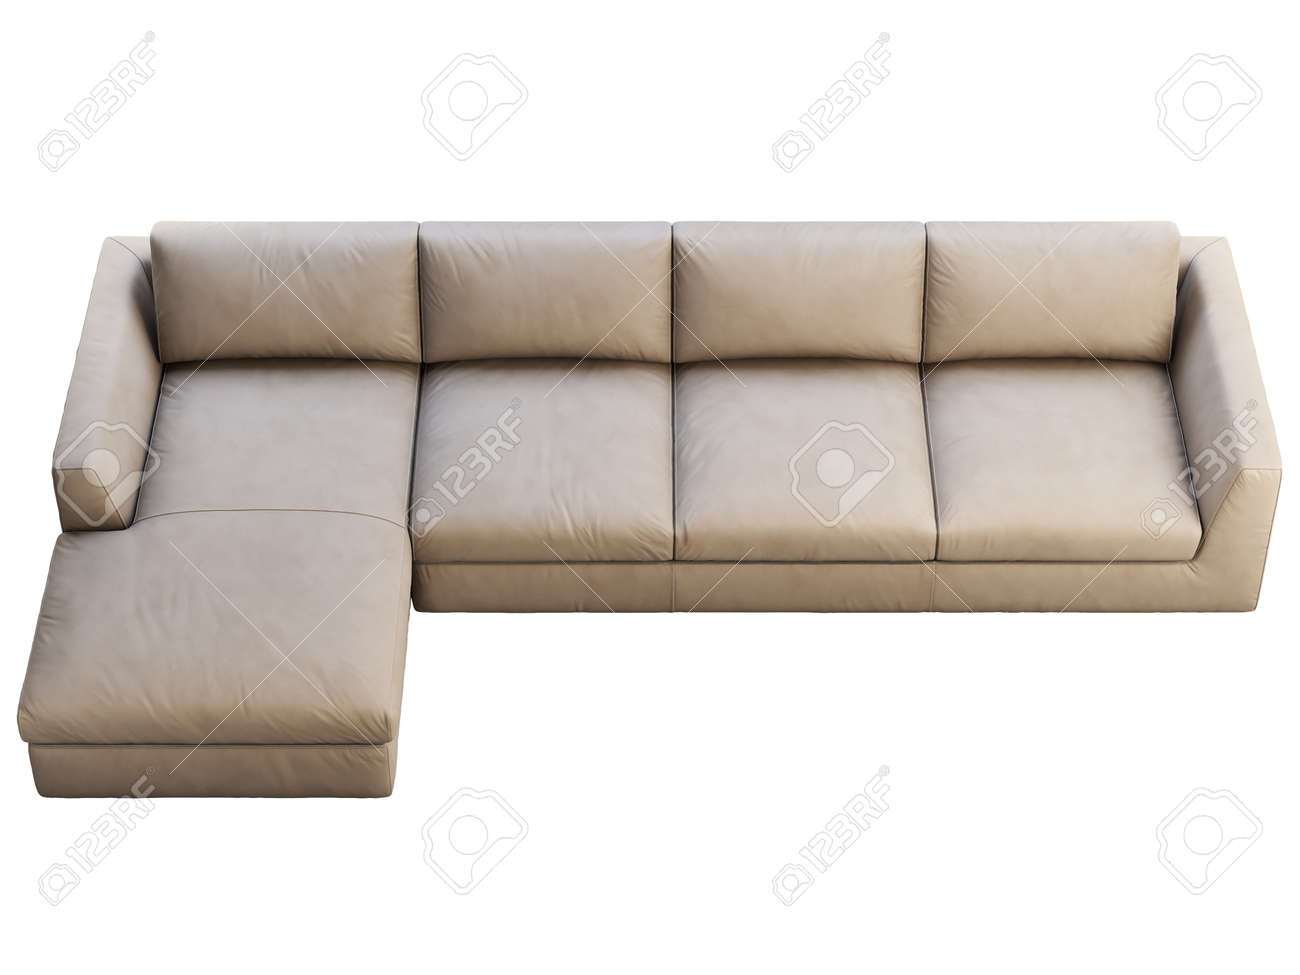 Chalet Modular Leather Sofa With Chaise Lounge Leather Upholstery Stock Photo Picture And Royalty Free Image Image 138175919